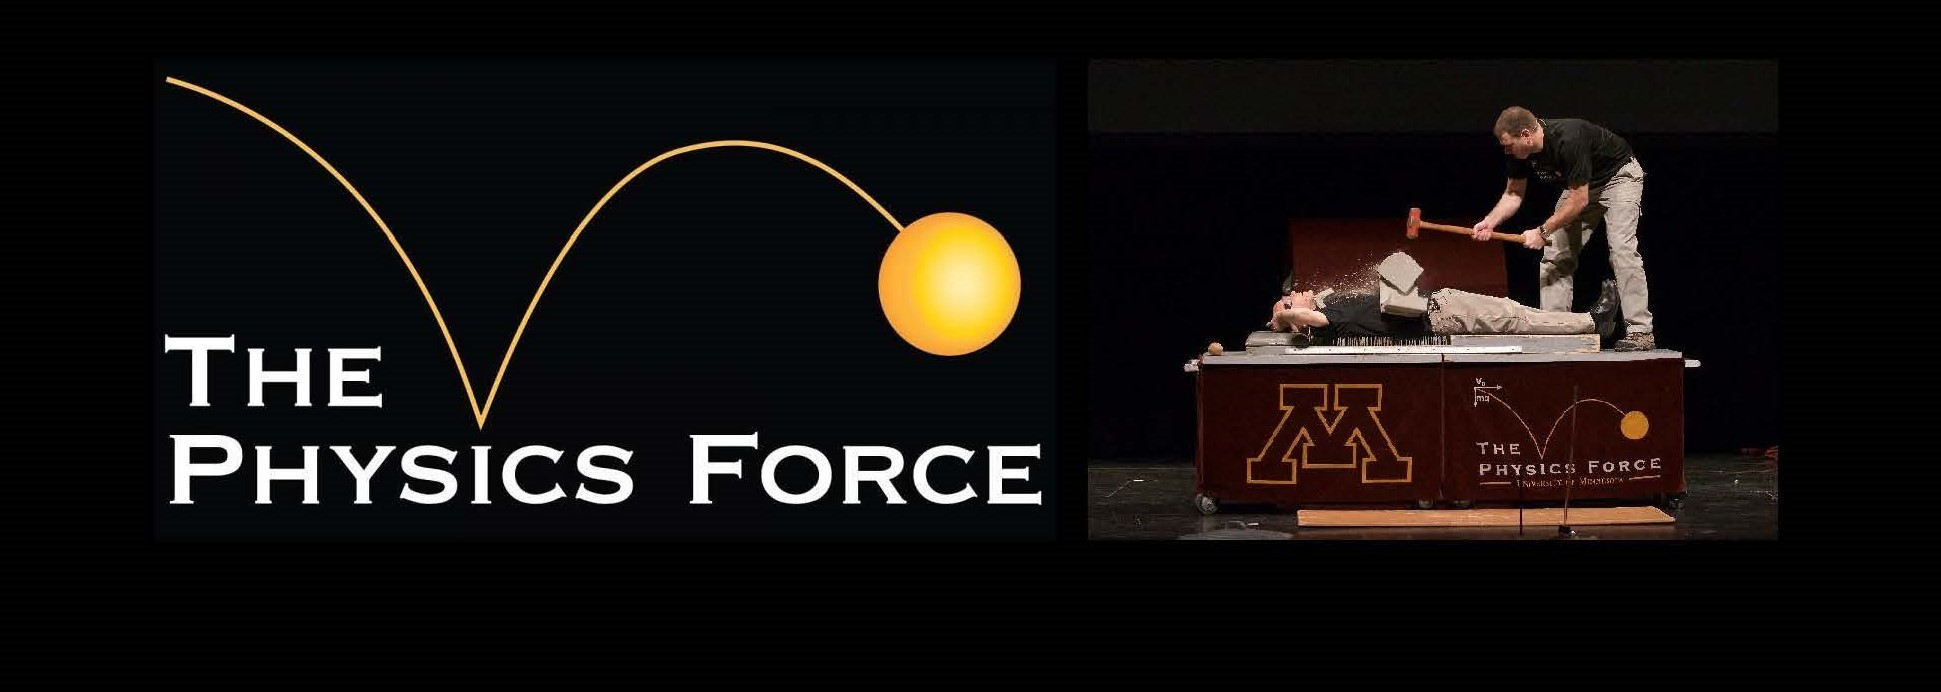 The Physics Force